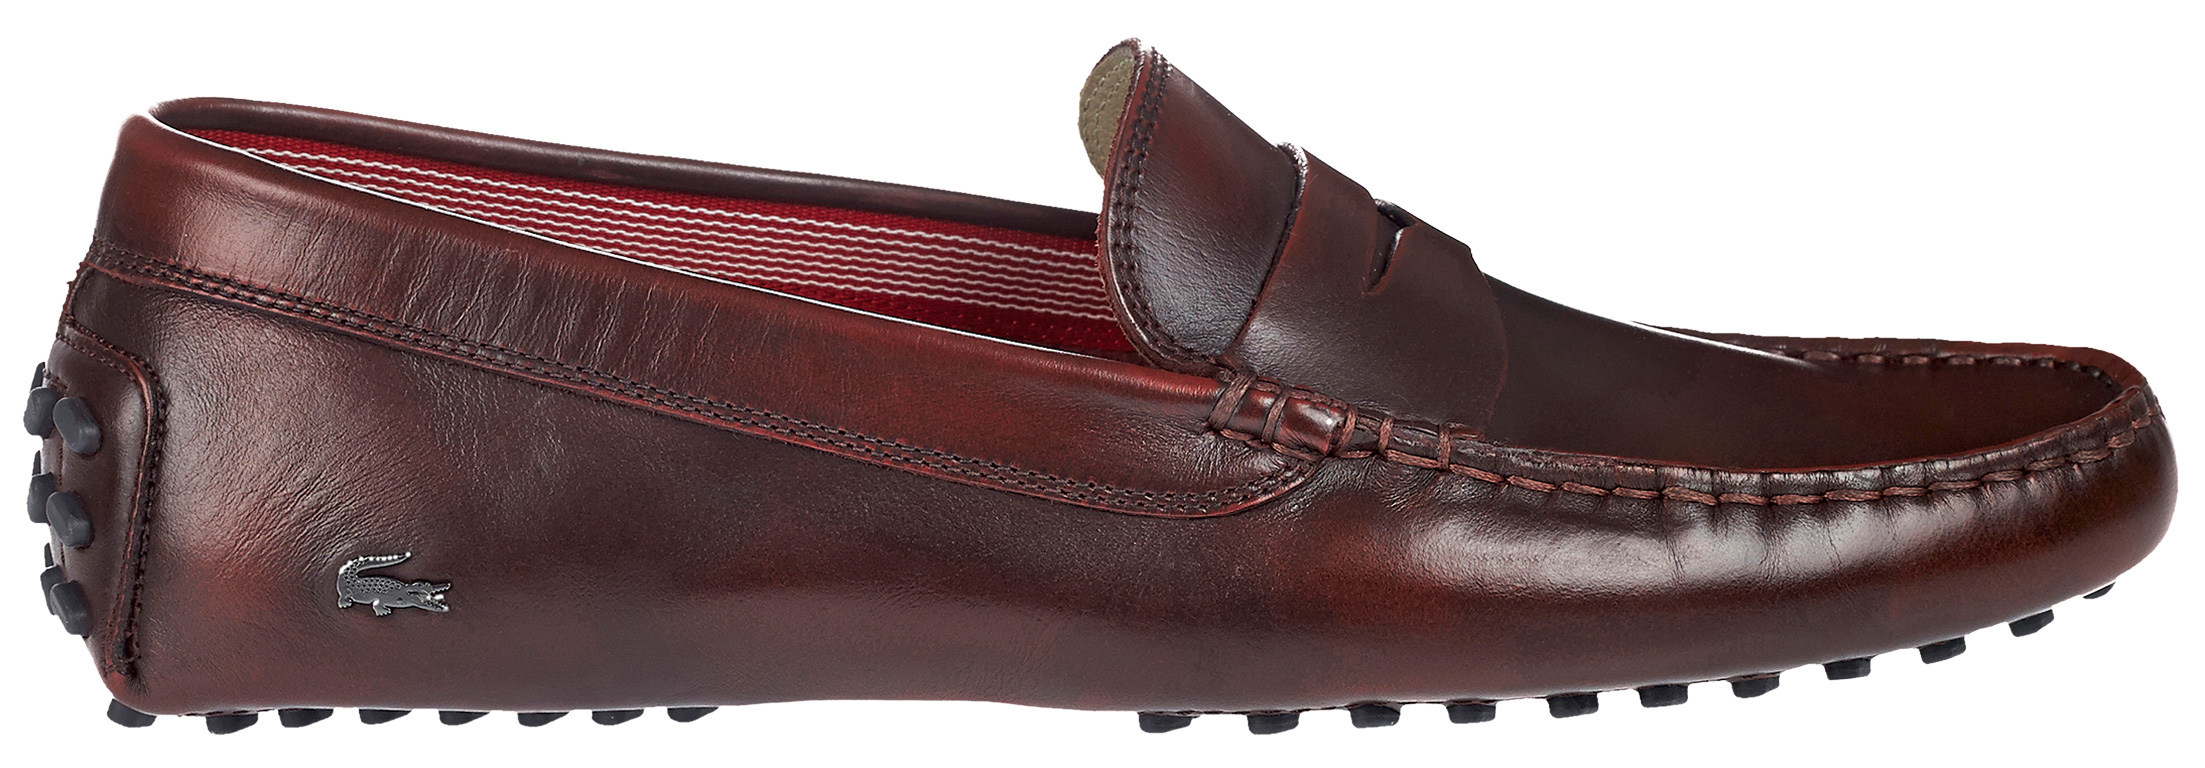 cf3926418 Pick  Concours Loafers by Lacoste